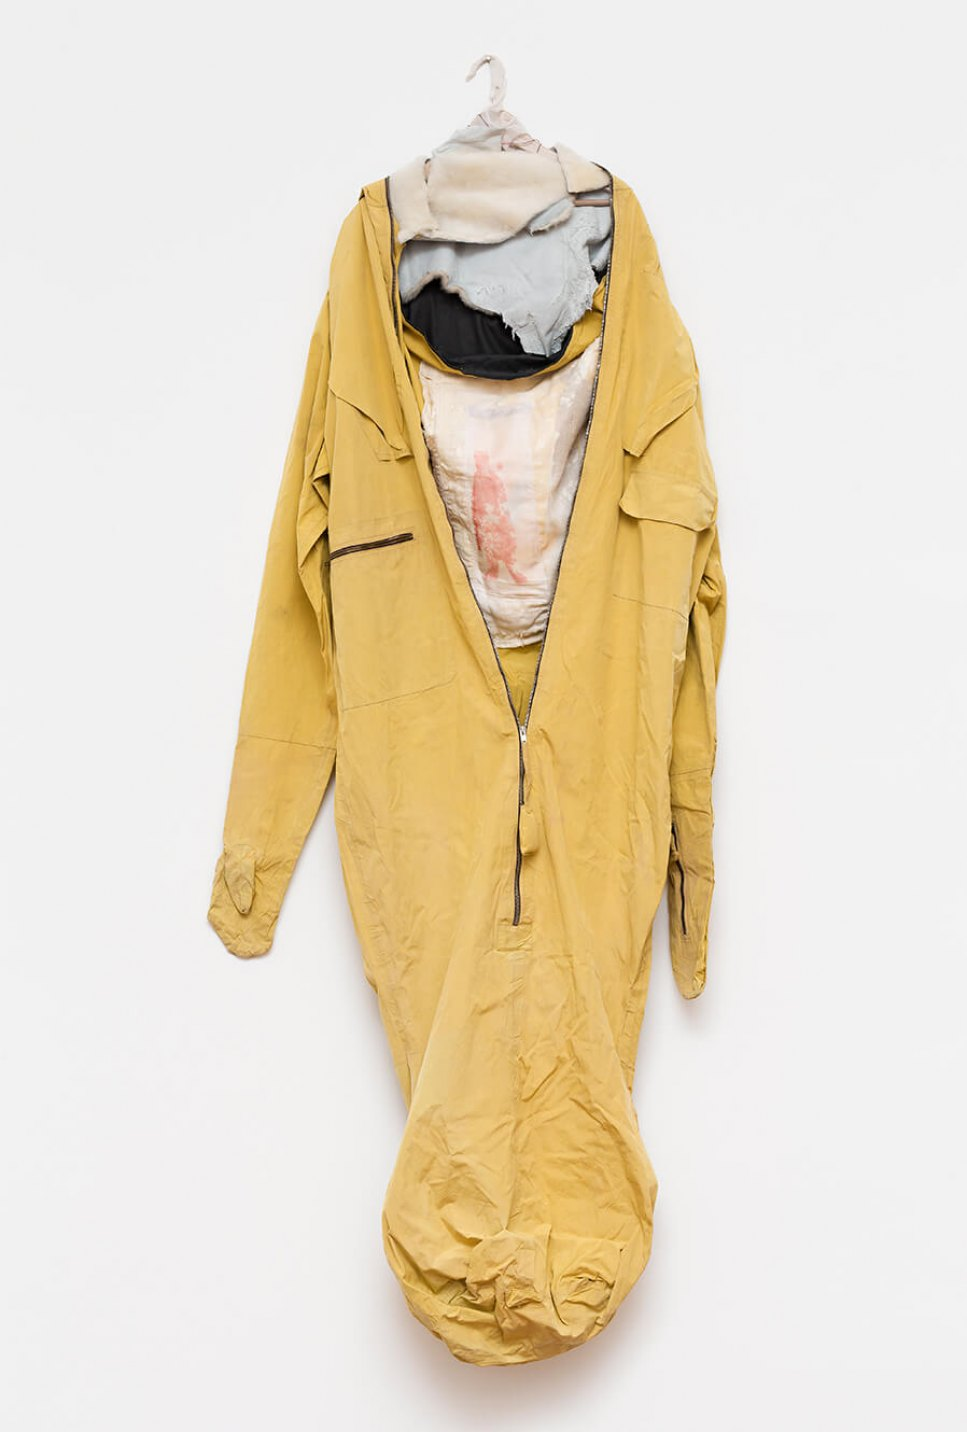 f.marquespenteado,<em> Proteger Sean</em>, 2014, synthetic  ber sleeping bag, with hand and machine embroidery, and wood hanger with lamb skin, 187 × 80 cm - Mendes Wood DM